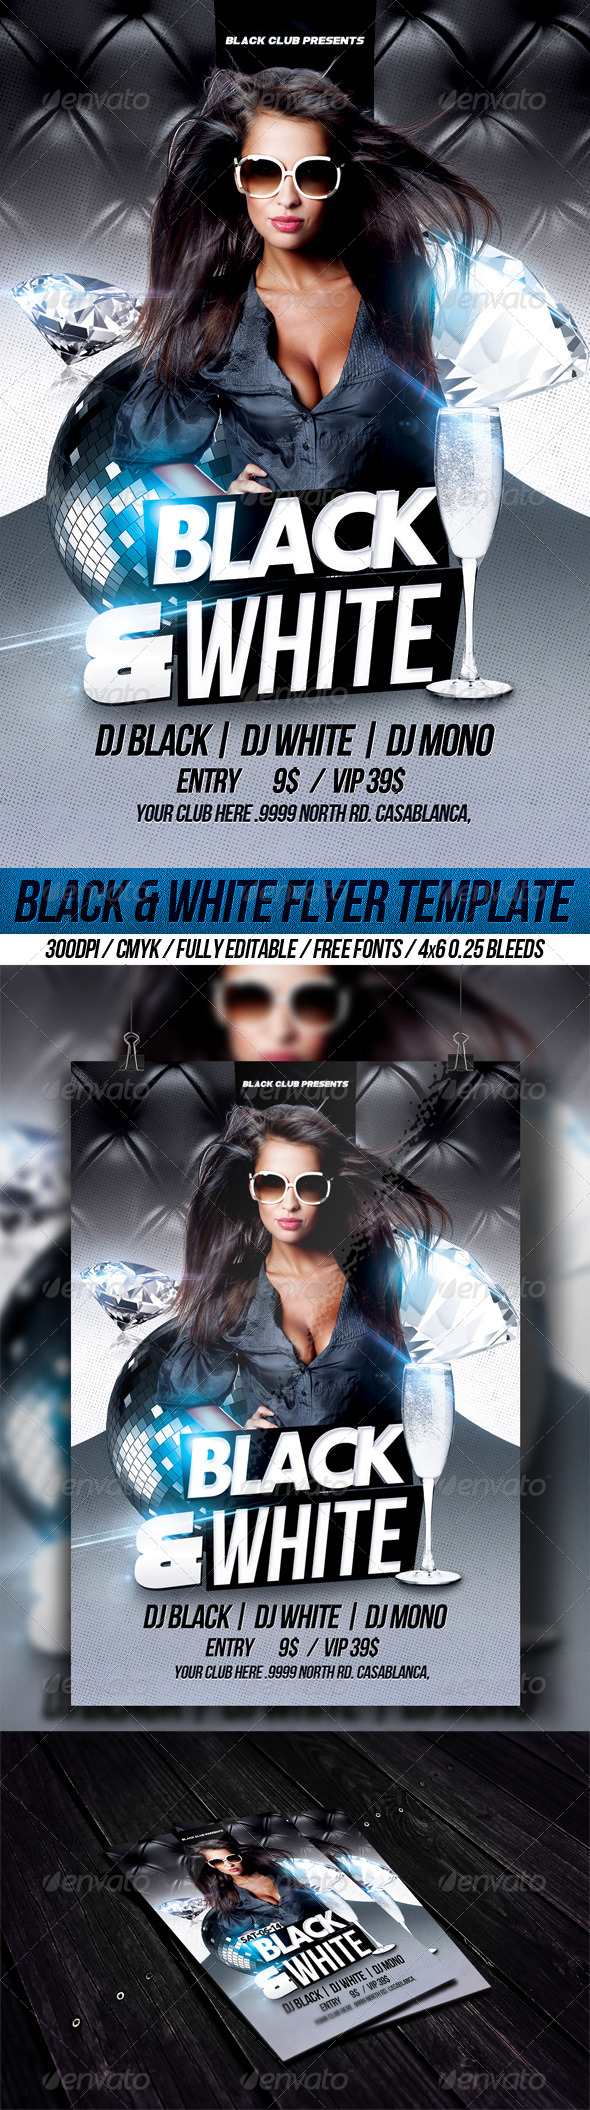 GraphicRiver Black & White Flyer Template 8406623